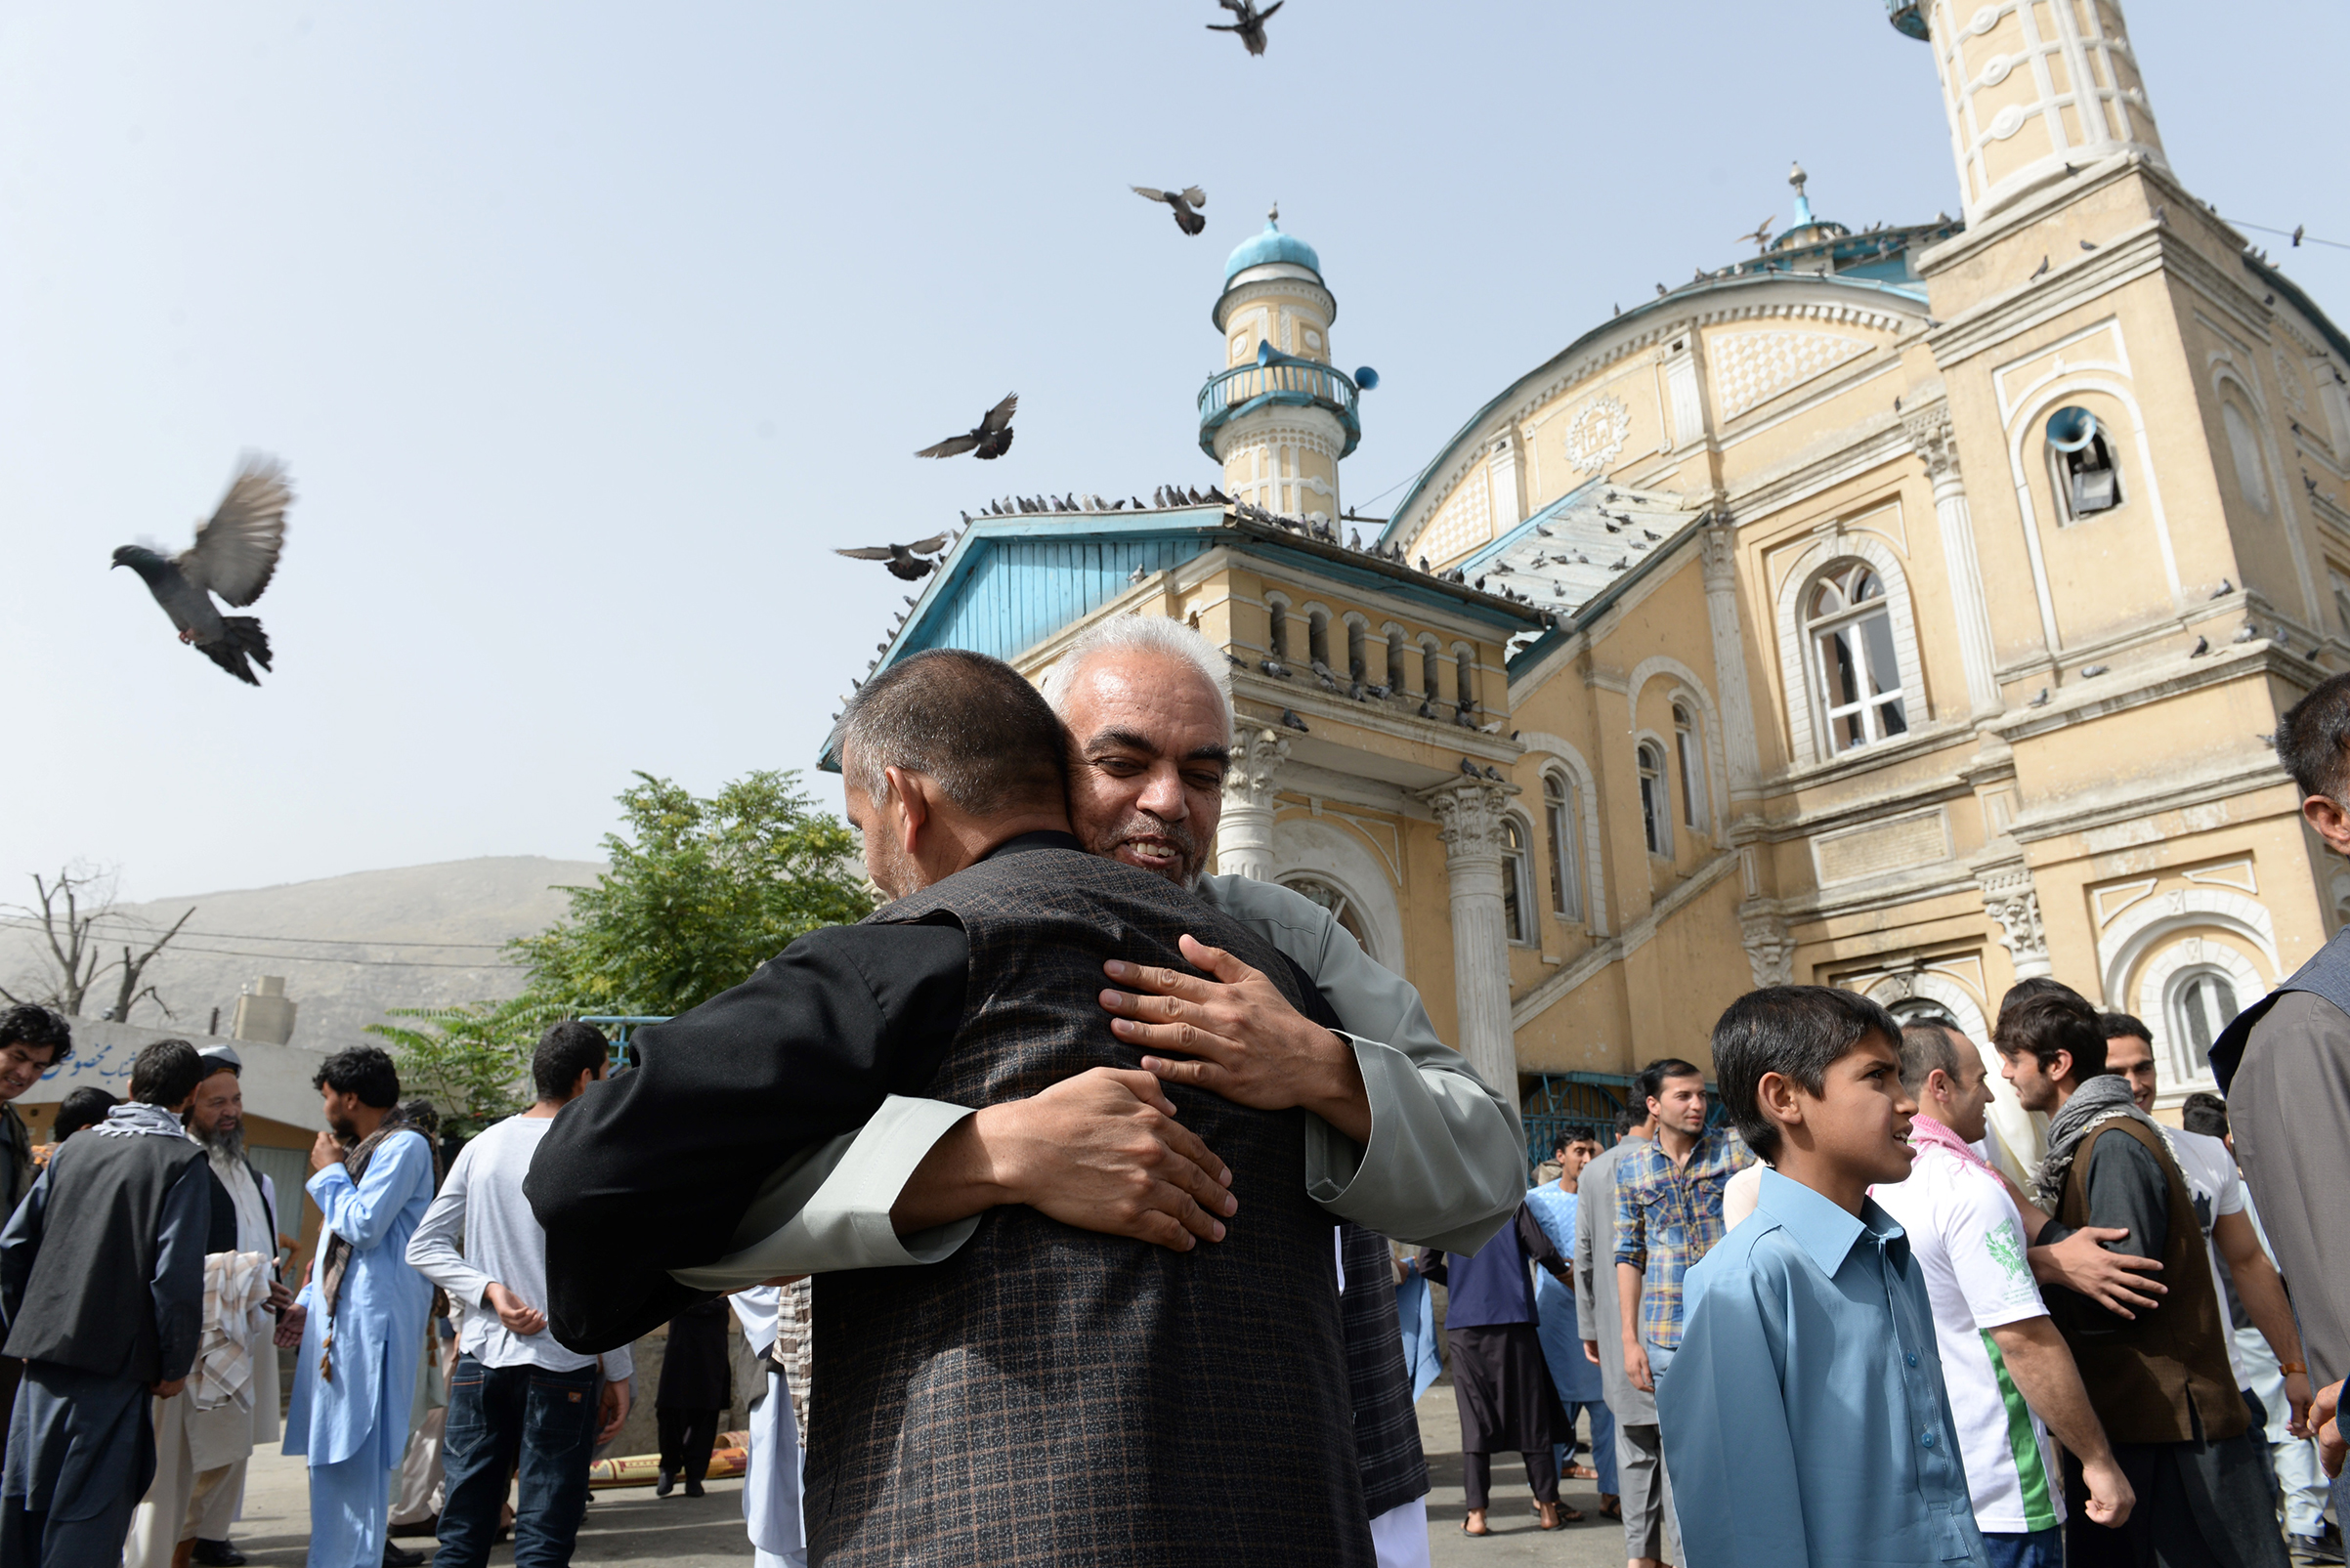 Afghan Muslims hug each other after offering prayers at the start of the Eid al-Fitr holiday which marks the end of Ramadan at the Shah-e Do Shamshira mosque in Kabul on June 15, 2018.